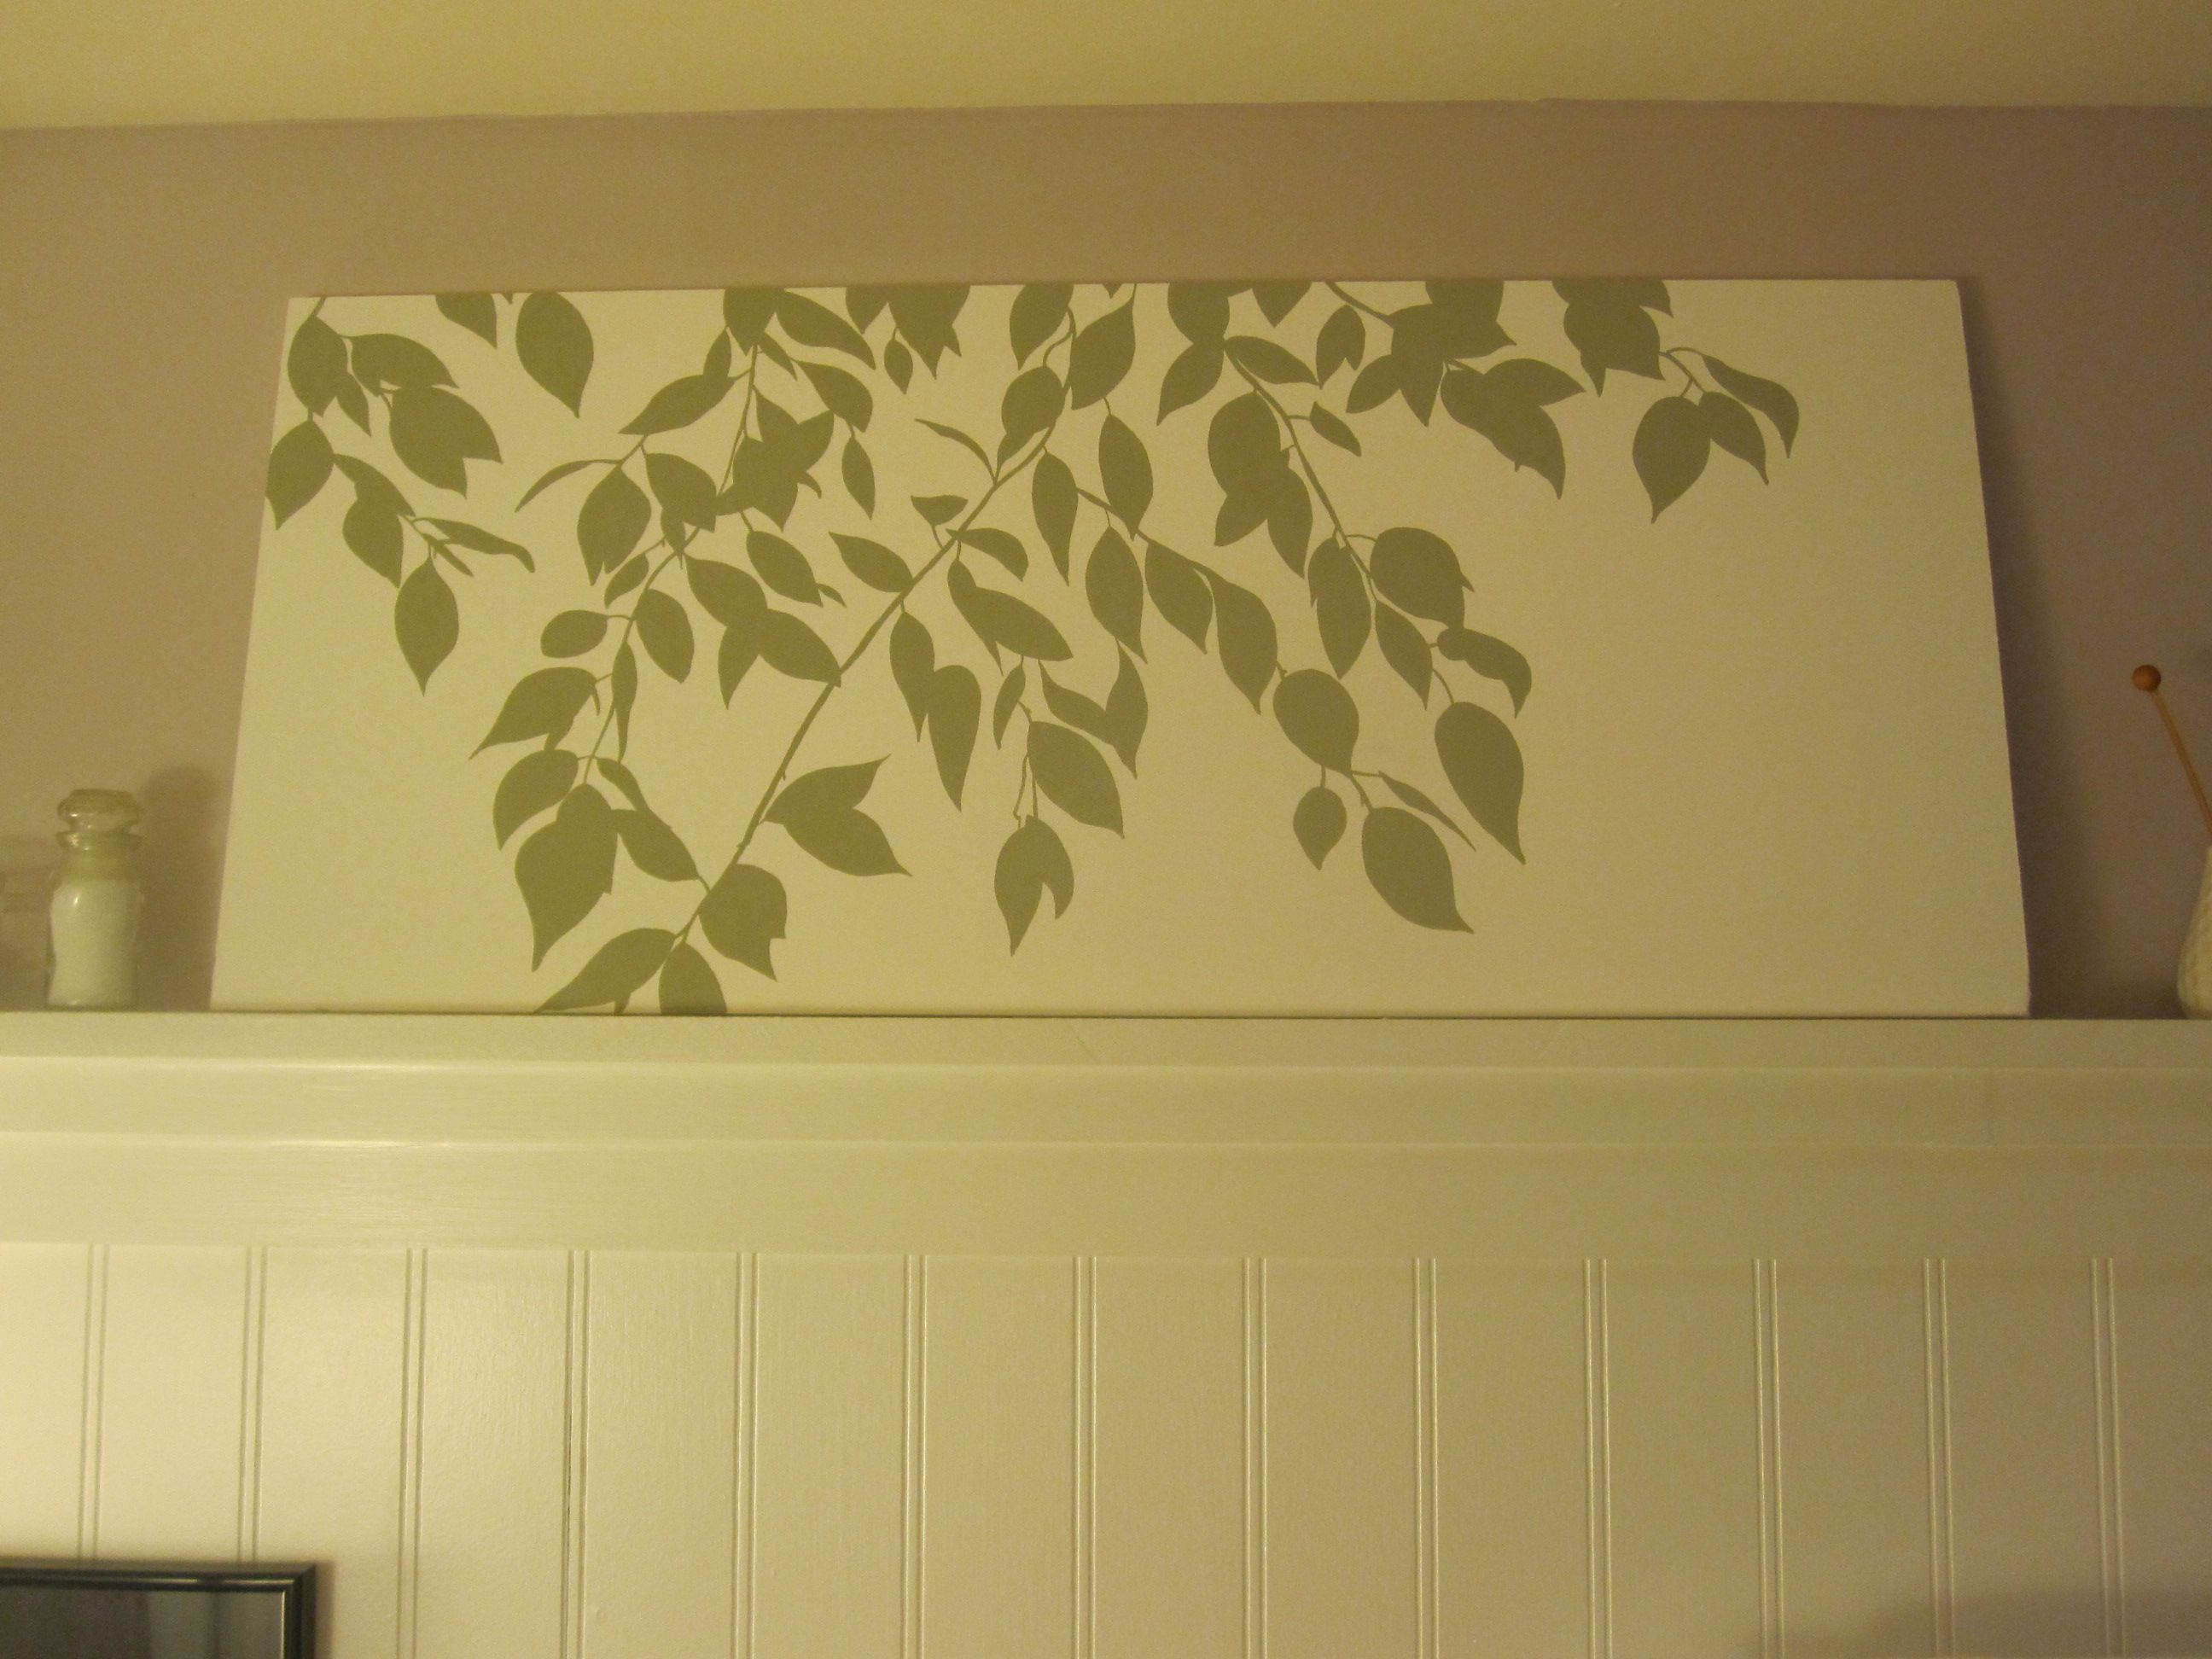 Custom Branch Silhouette Artwork Tutorial | Leaves, Craft and Diy art